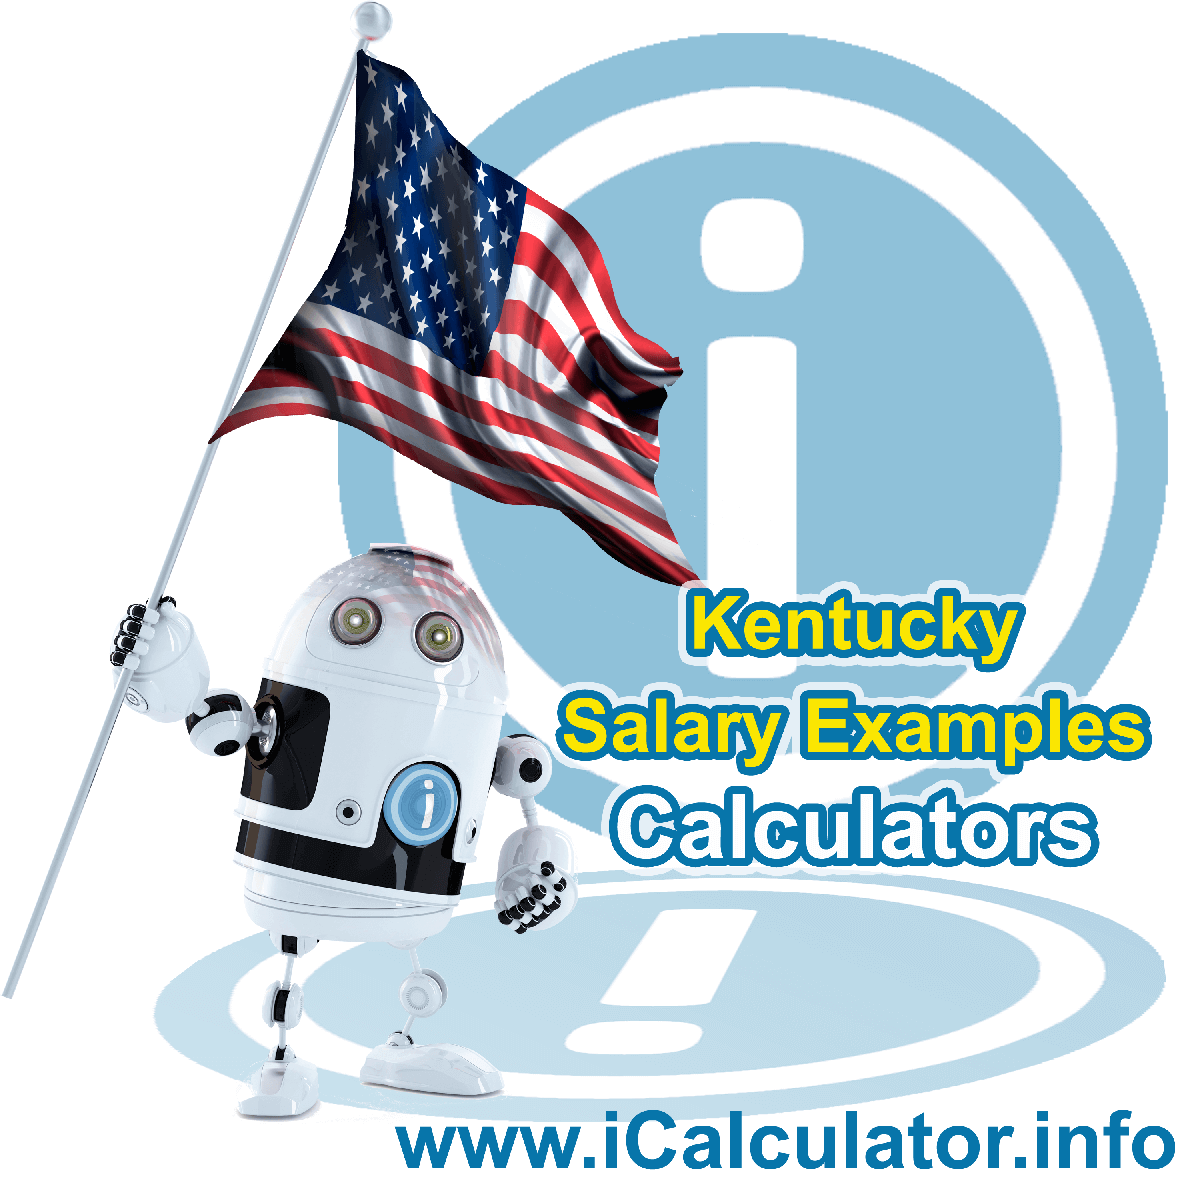 Kentucky Salary Example for $50.00 in 2020 | iCalculator | $50.00 salary example for employee and employer paying Kentucky State tincome taxes. Detailed salary after tax calculation including Kentucky State Tax, Federal State Tax, Medicare Deductions, Social Security, Capital Gains and other income tax and salary deductions complete with supporting Kentucky state tax tables